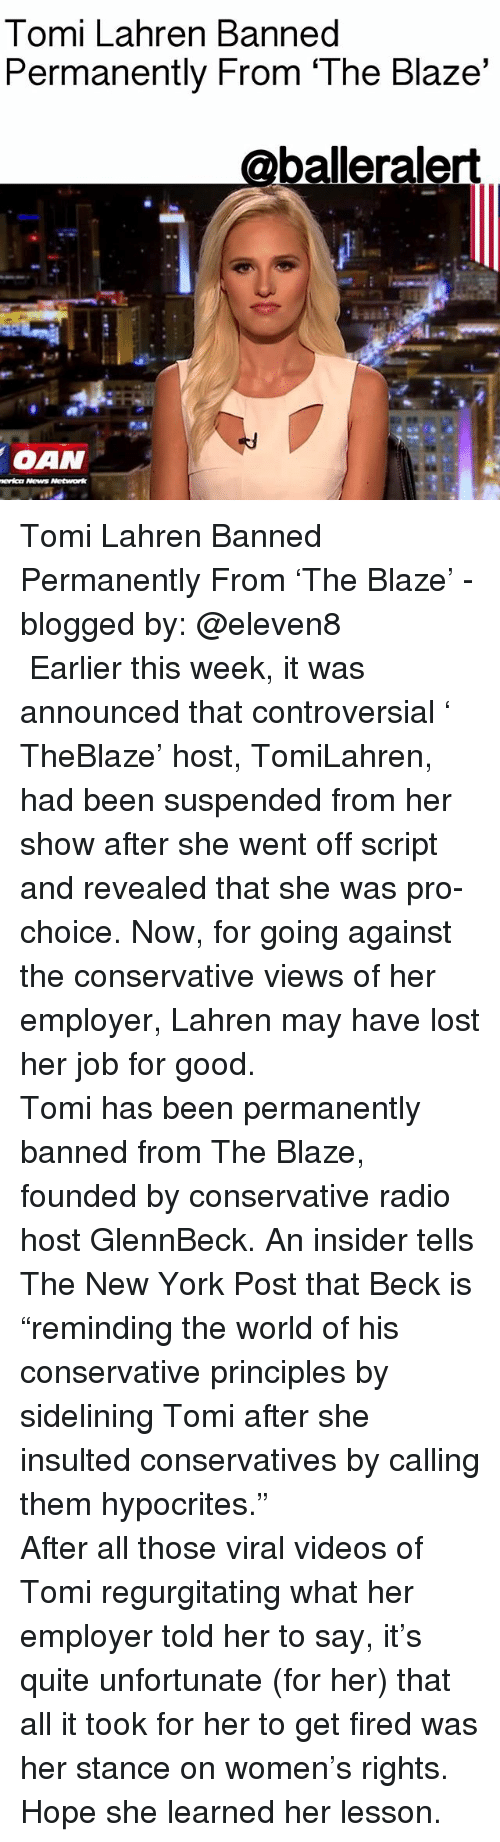 """Oan: Tomi Lahren Banned  Permanently From 'The Blaze'  balleralert  OAN  Network Tomi Lahren Banned Permanently From 'The Blaze' - blogged by: @eleven8 ⠀⠀⠀⠀⠀⠀⠀⠀⠀ ⠀⠀⠀⠀⠀⠀⠀⠀⠀ Earlier this week, it was announced that controversial ' TheBlaze' host, TomiLahren, had been suspended from her show after she went off script and revealed that she was pro-choice. Now, for going against the conservative views of her employer, Lahren may have lost her job for good. ⠀⠀⠀⠀⠀⠀⠀⠀⠀ ⠀⠀⠀⠀⠀⠀⠀⠀⠀ Tomi has been permanently banned from The Blaze, founded by conservative radio host GlennBeck. An insider tells The New York Post that Beck is """"reminding the world of his conservative principles by sidelining Tomi after she insulted conservatives by calling them hypocrites."""" ⠀⠀⠀⠀⠀⠀⠀⠀⠀ ⠀⠀⠀⠀⠀⠀⠀⠀⠀ After all those viral videos of Tomi regurgitating what her employer told her to say, it's quite unfortunate (for her) that all it took for her to get fired was her stance on women's rights. Hope she learned her lesson."""